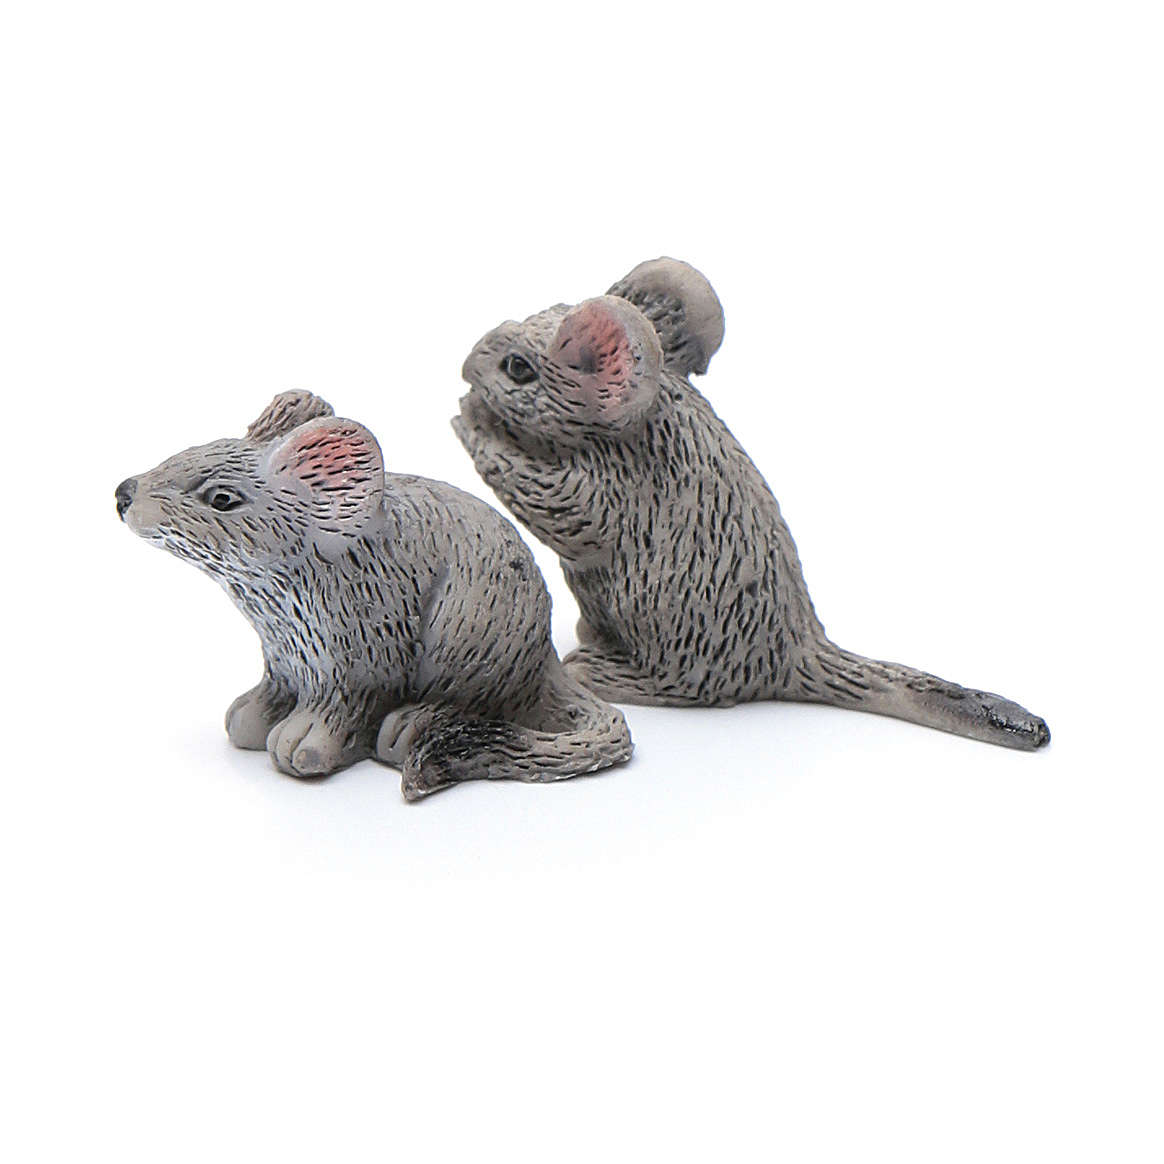 Mouses in resin measuring 3 cm, 4 figurines 3